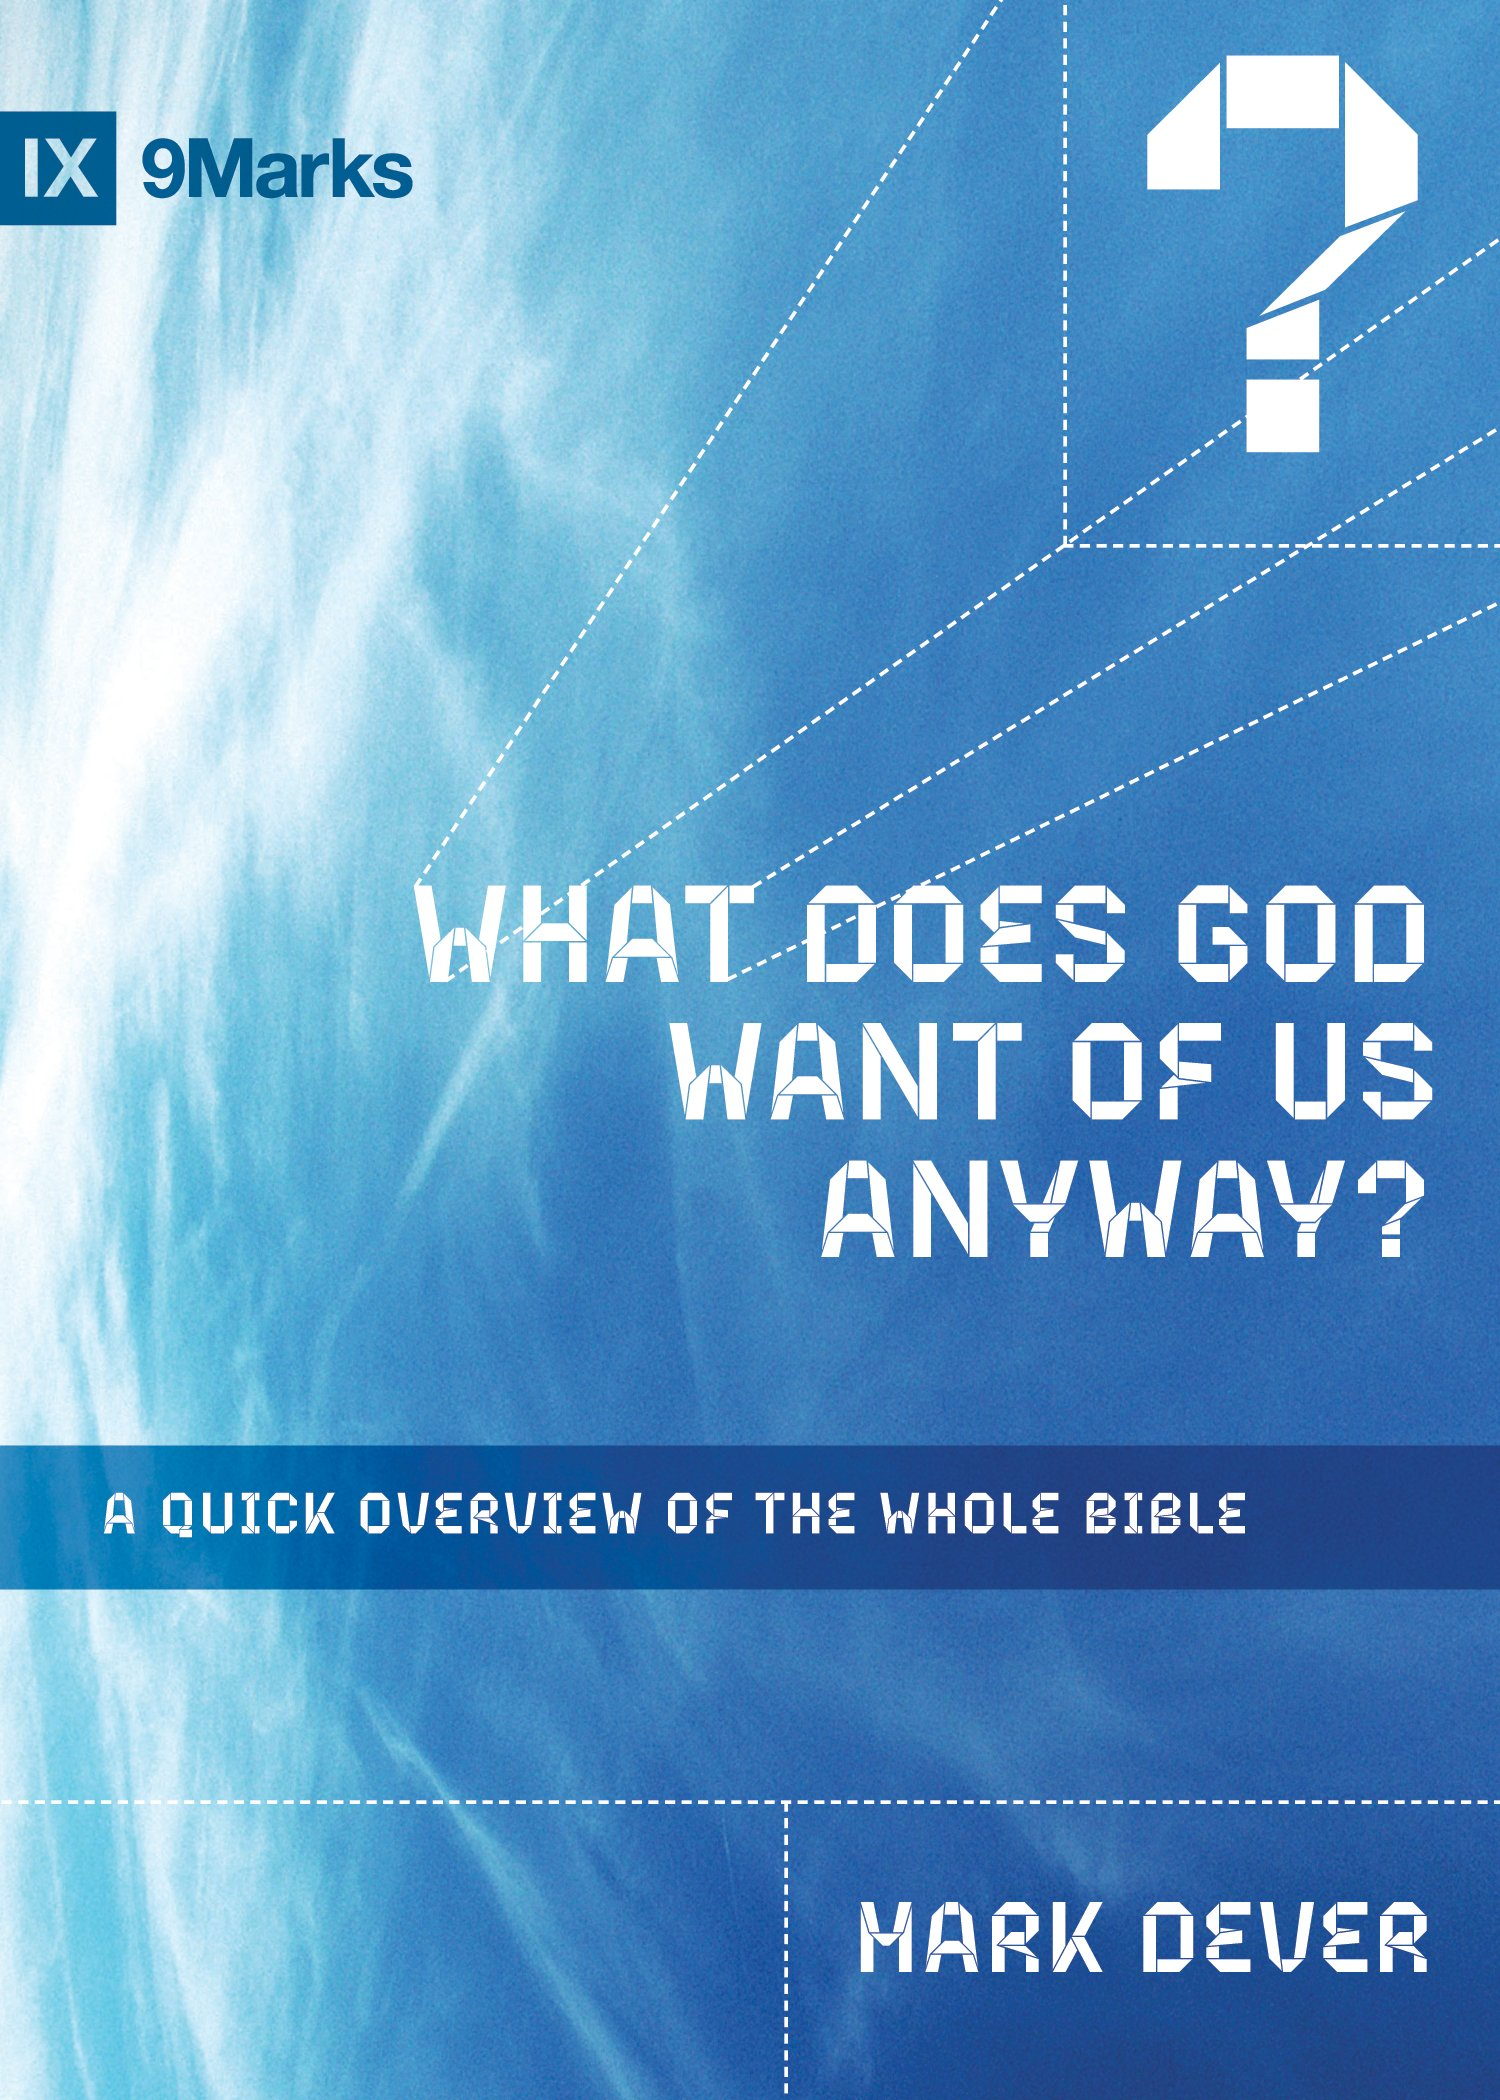 What Does God Want of Us Anyway?: A Quick Overview of the Whole Bible (9Marks) pdf